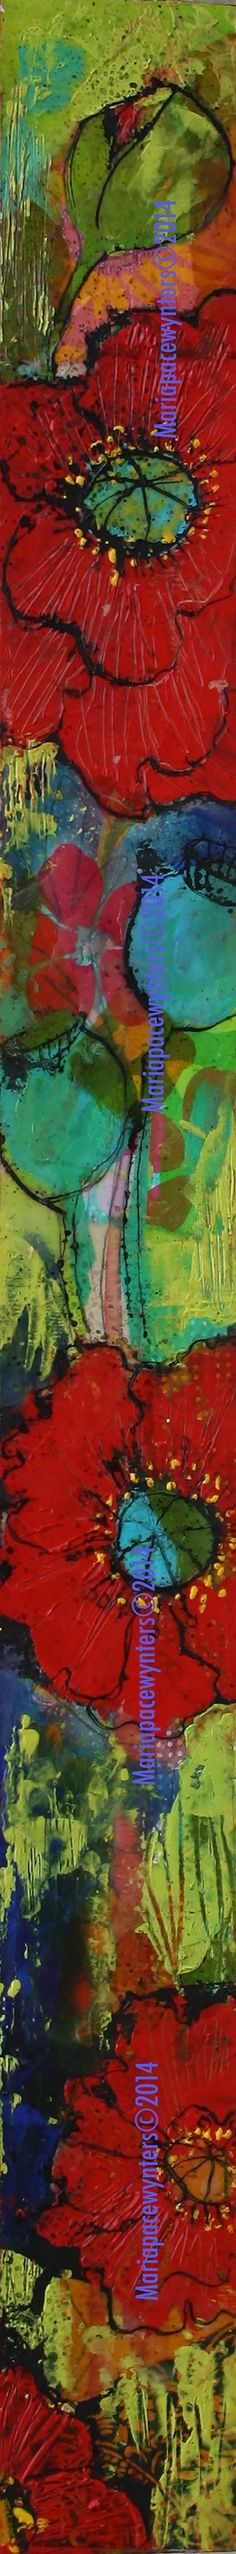 Summer Garden Slice- Original mixed media painting by Maria Pace-Wynters